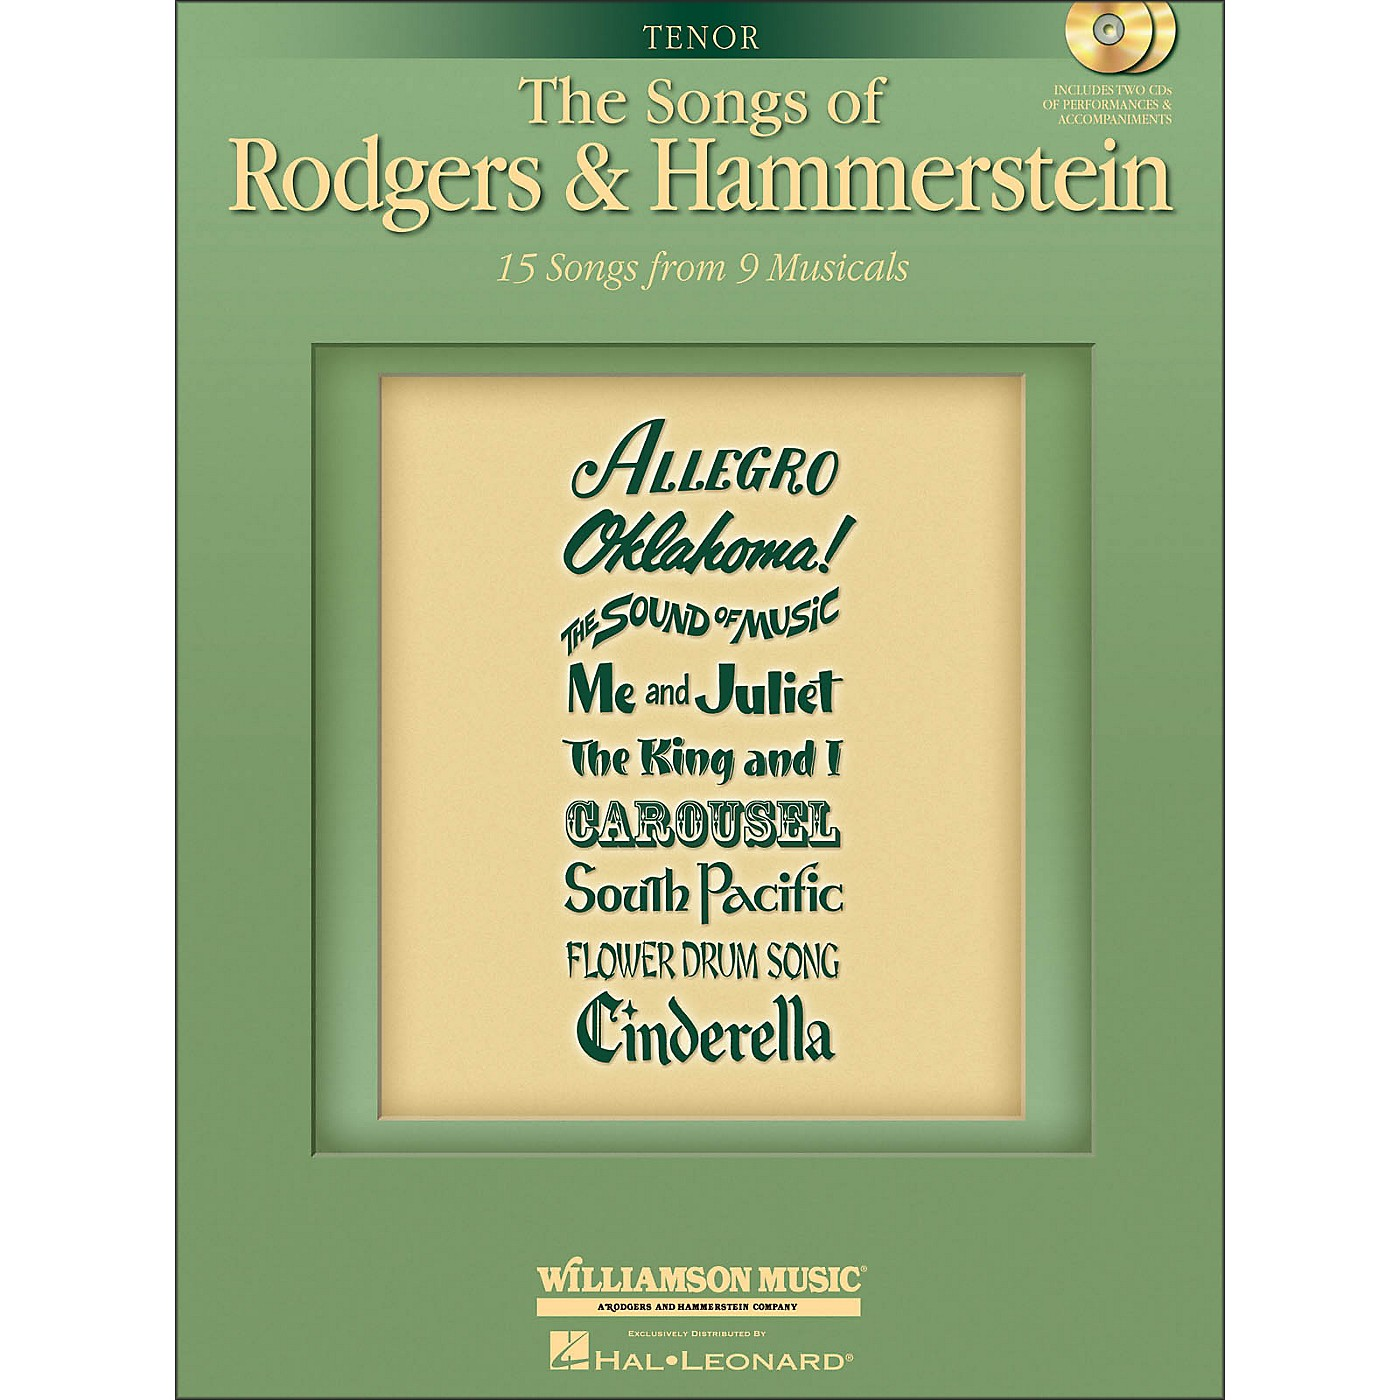 Hal Leonard The Songs Of Rodgers And Hammerstein for Tenor Voice thumbnail